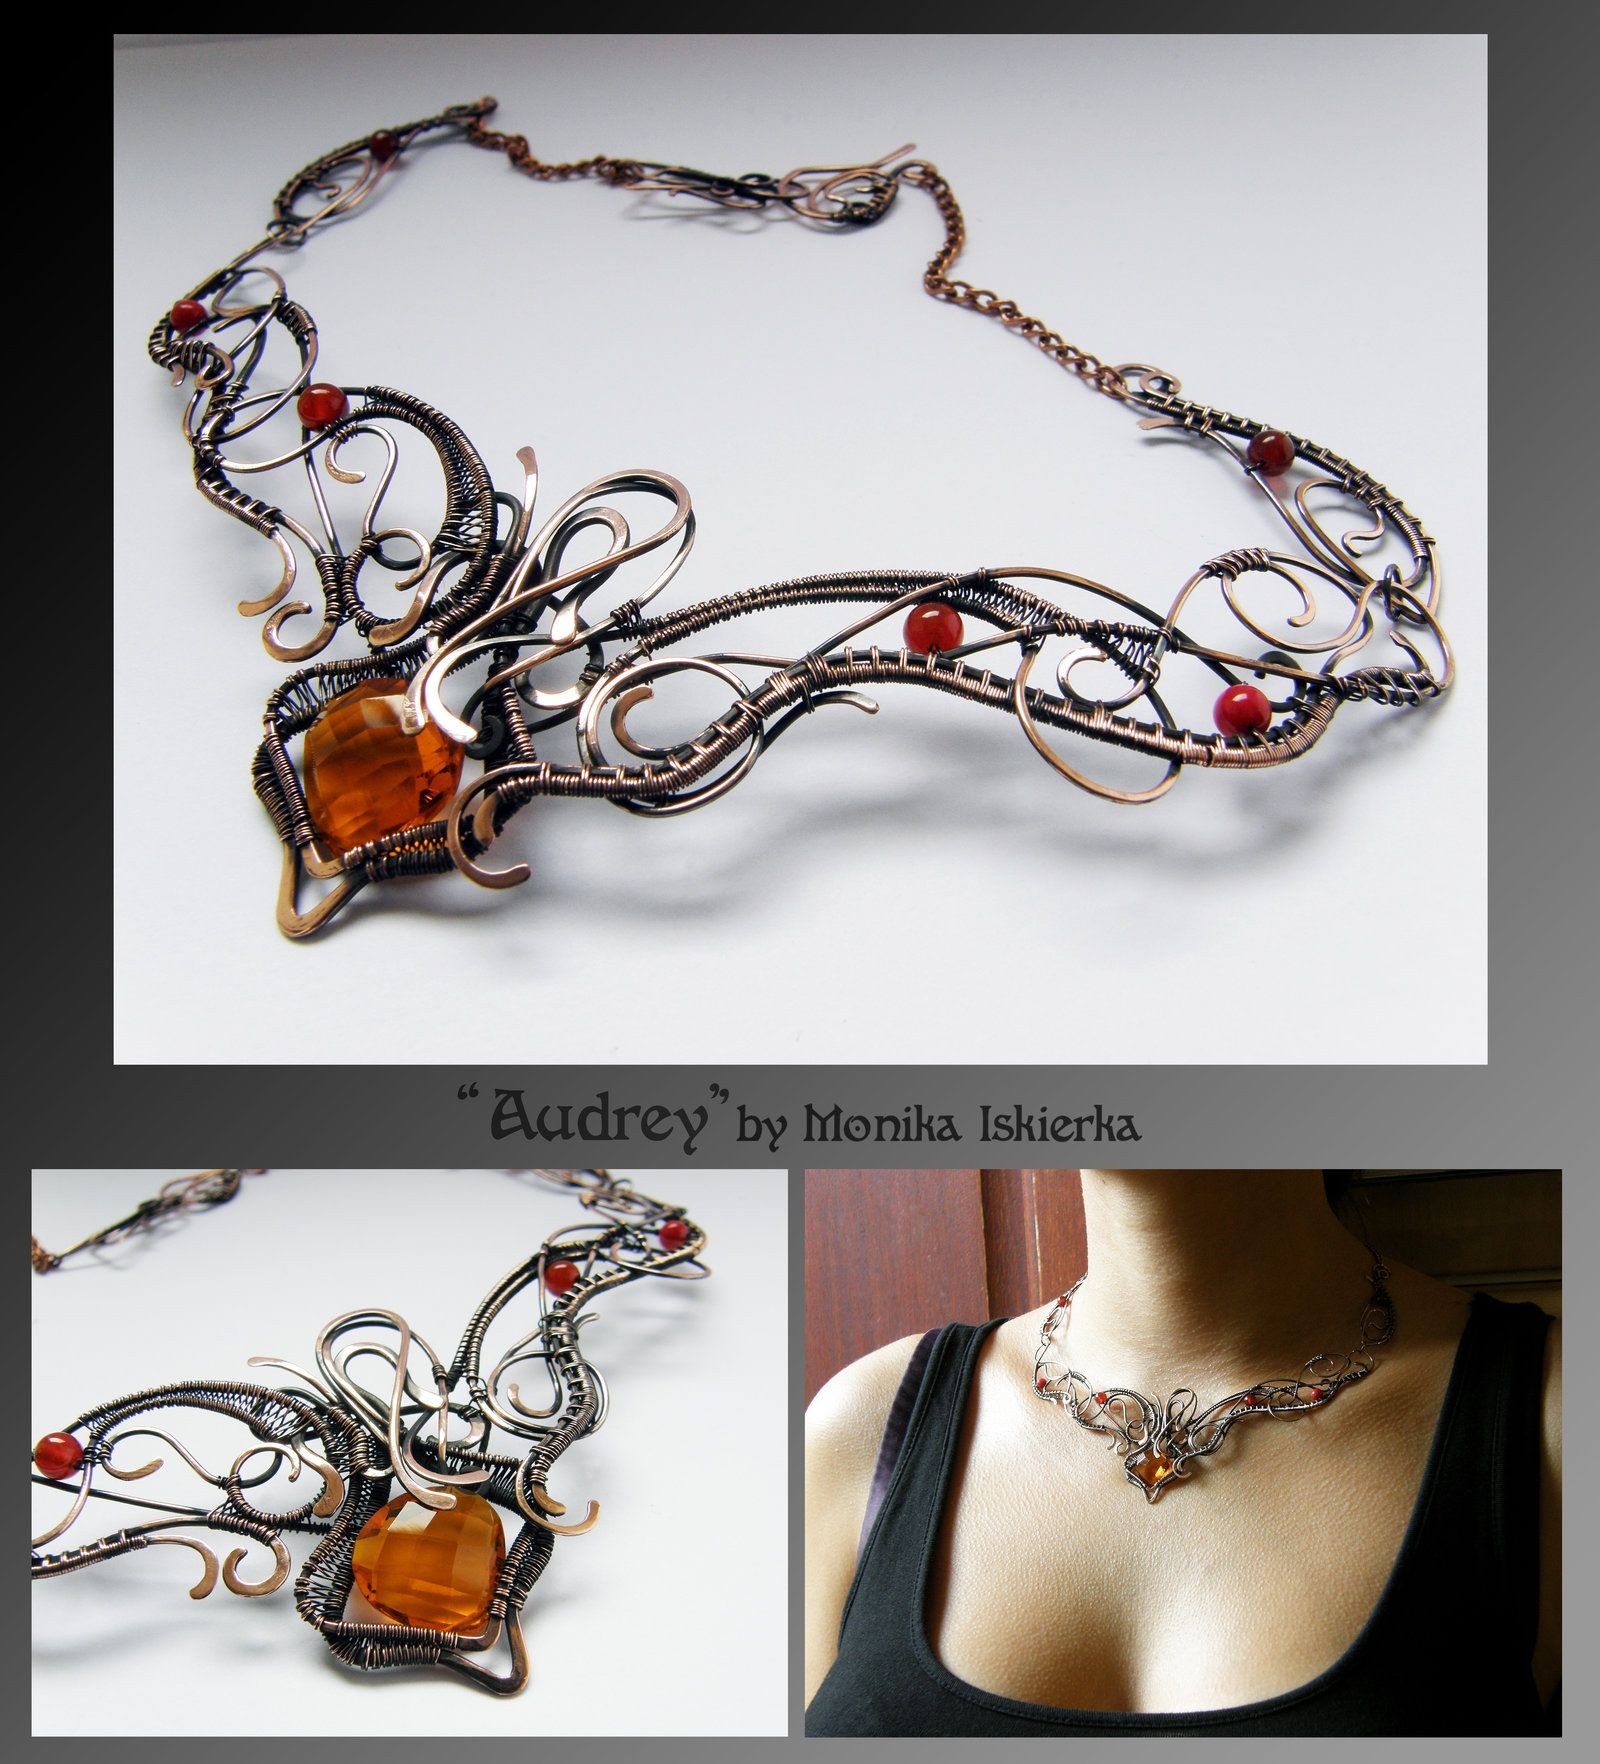 Audrey- wire wrapped copper necklace by mea00.deviantart.com on @deviantART